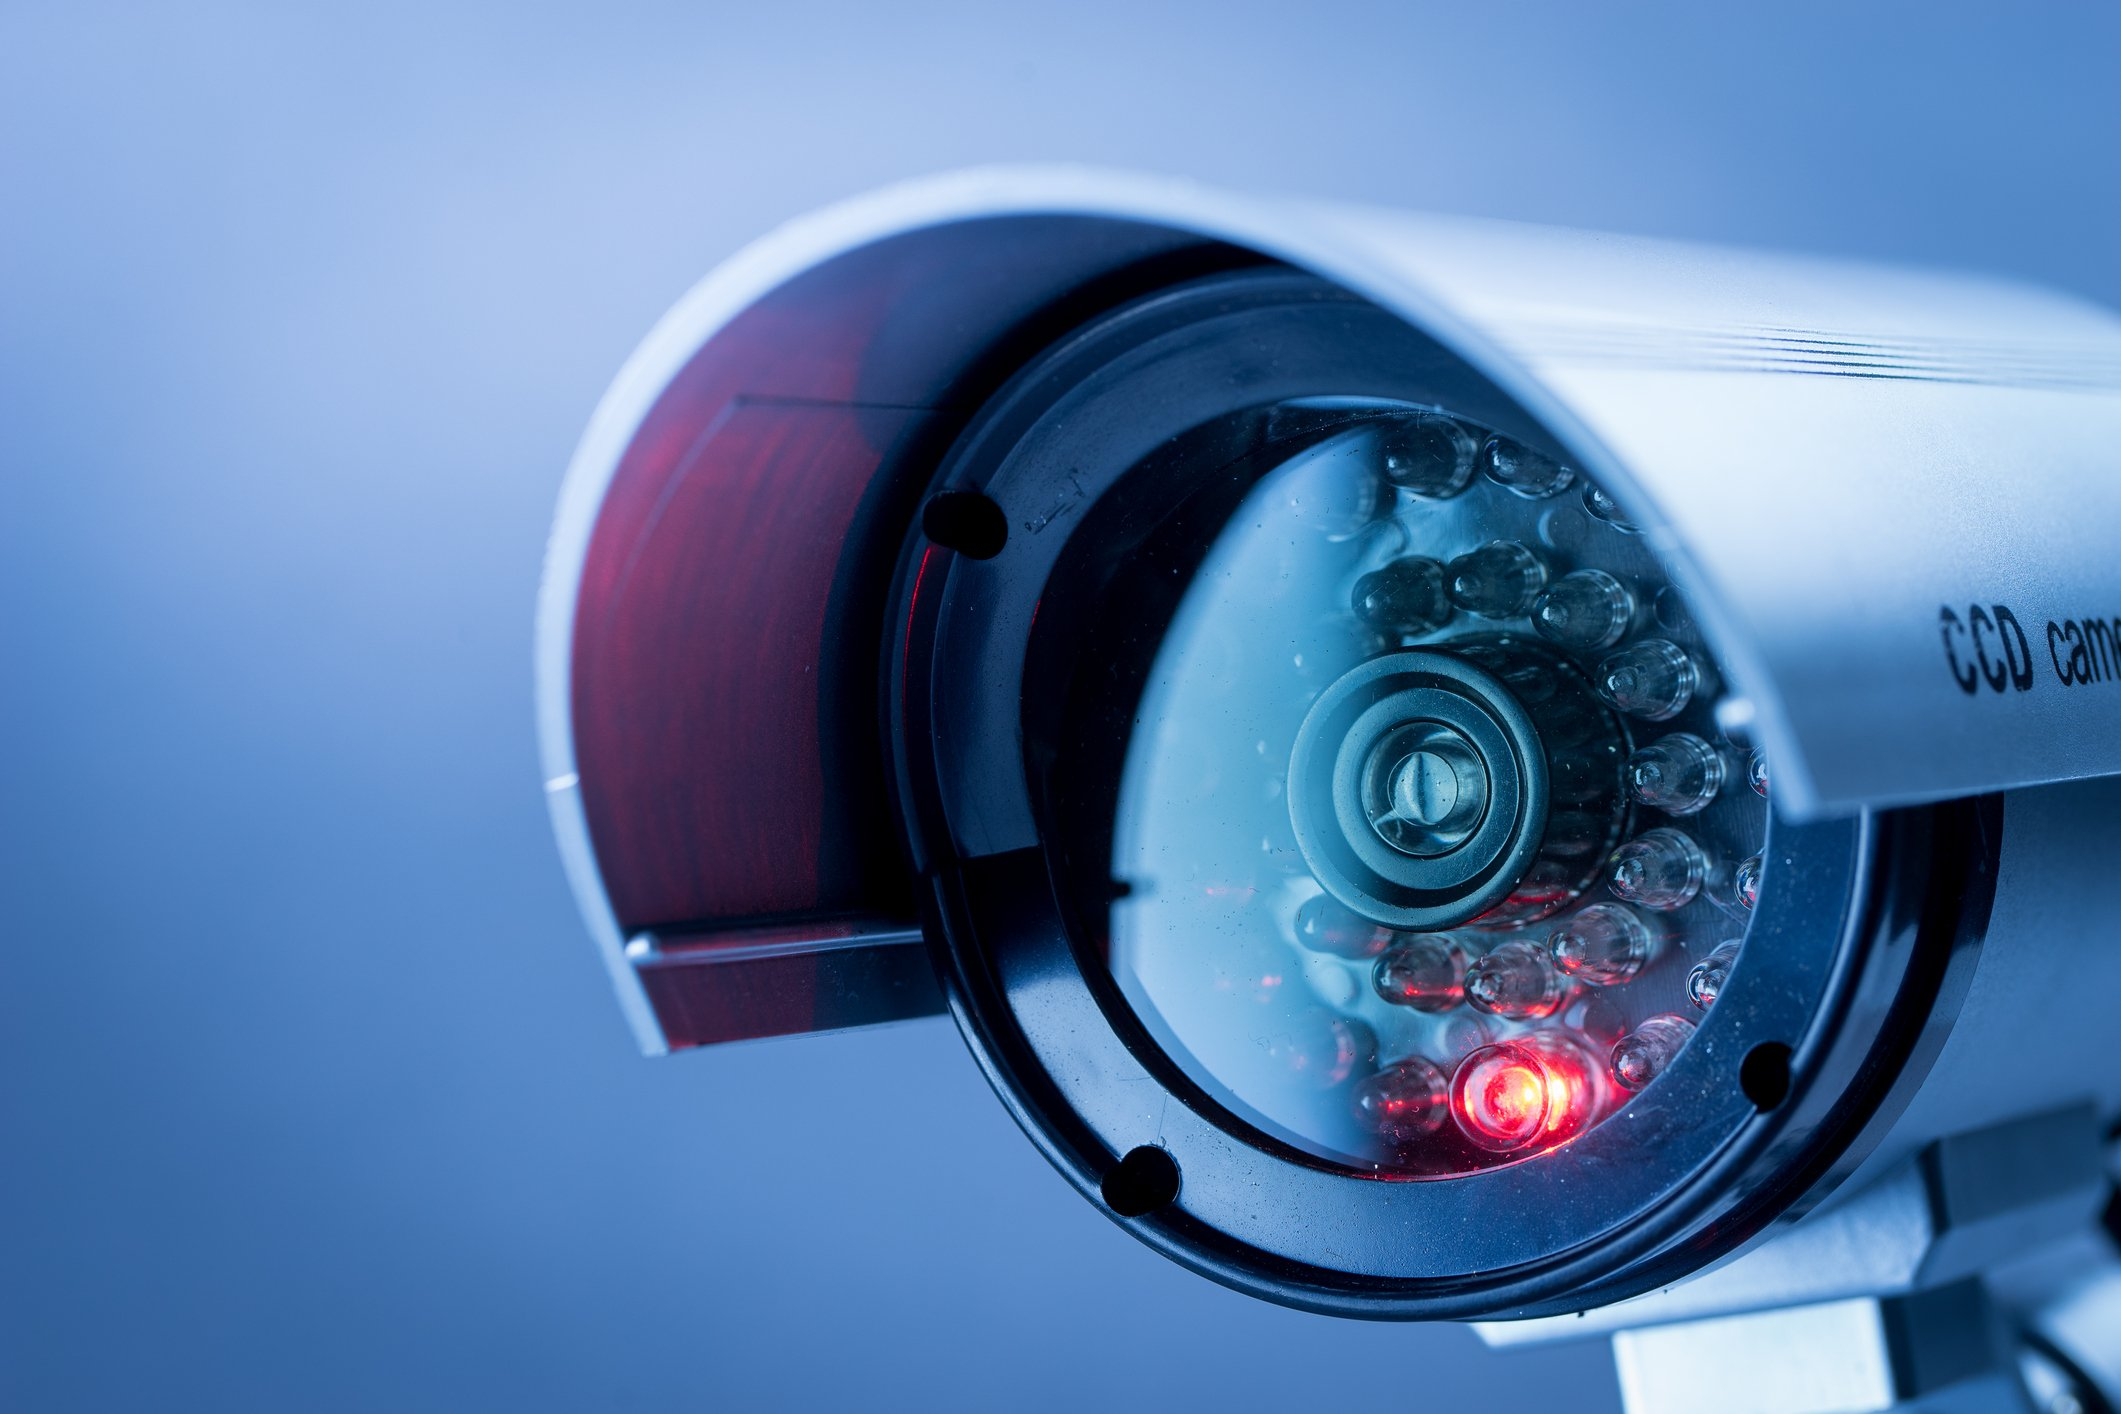 CCTV Installation and Maintenance Ipswich